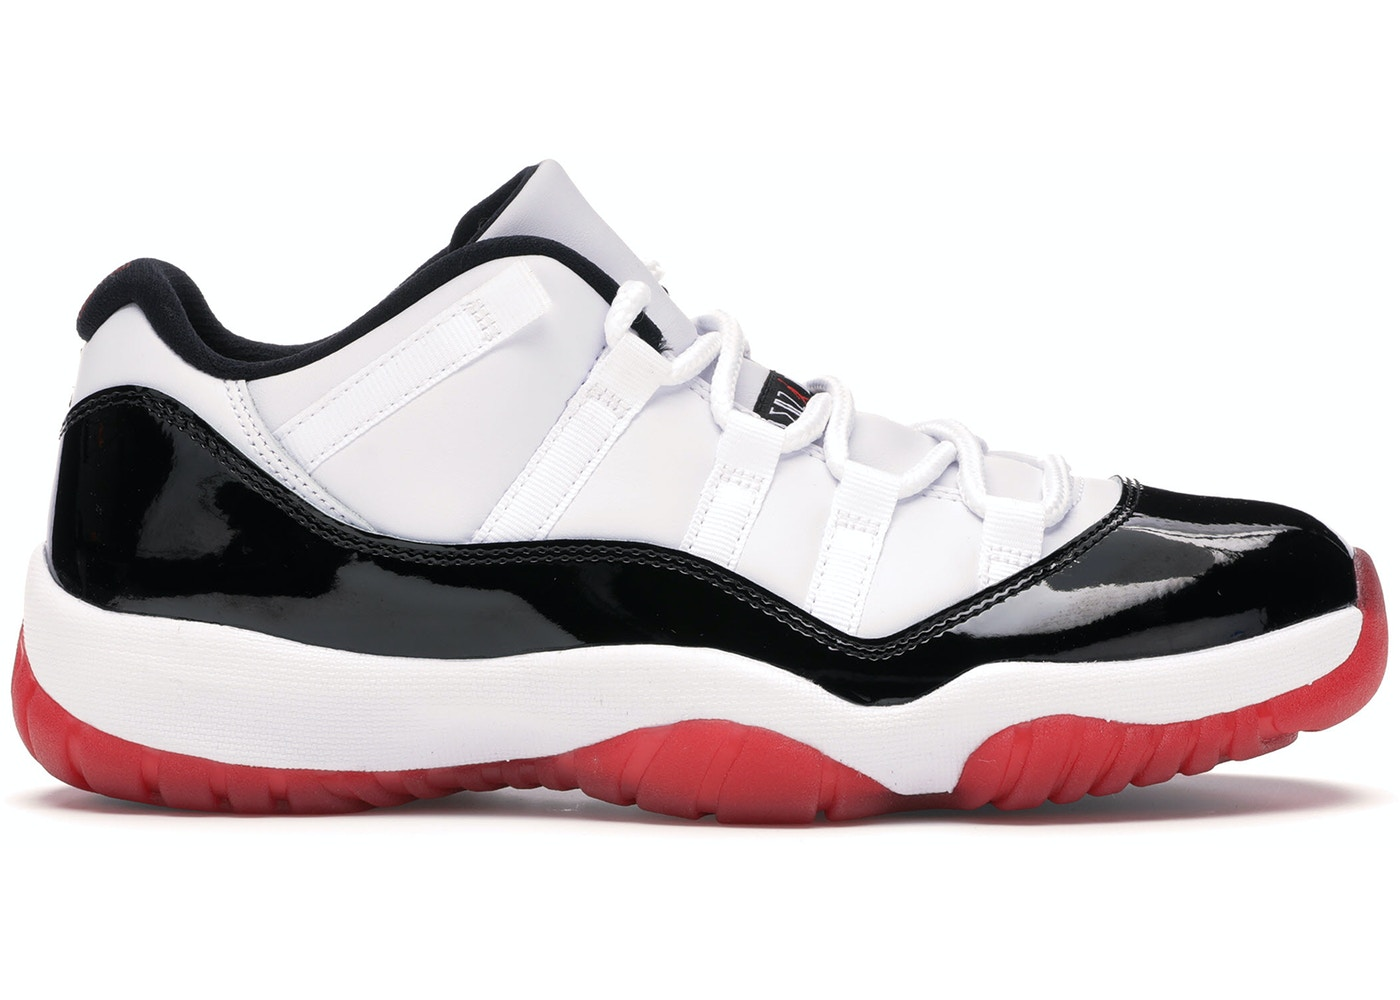 Finalmente pistola Hasta  Buy Air Jordan 11 Shoes & Deadstock Sneakers